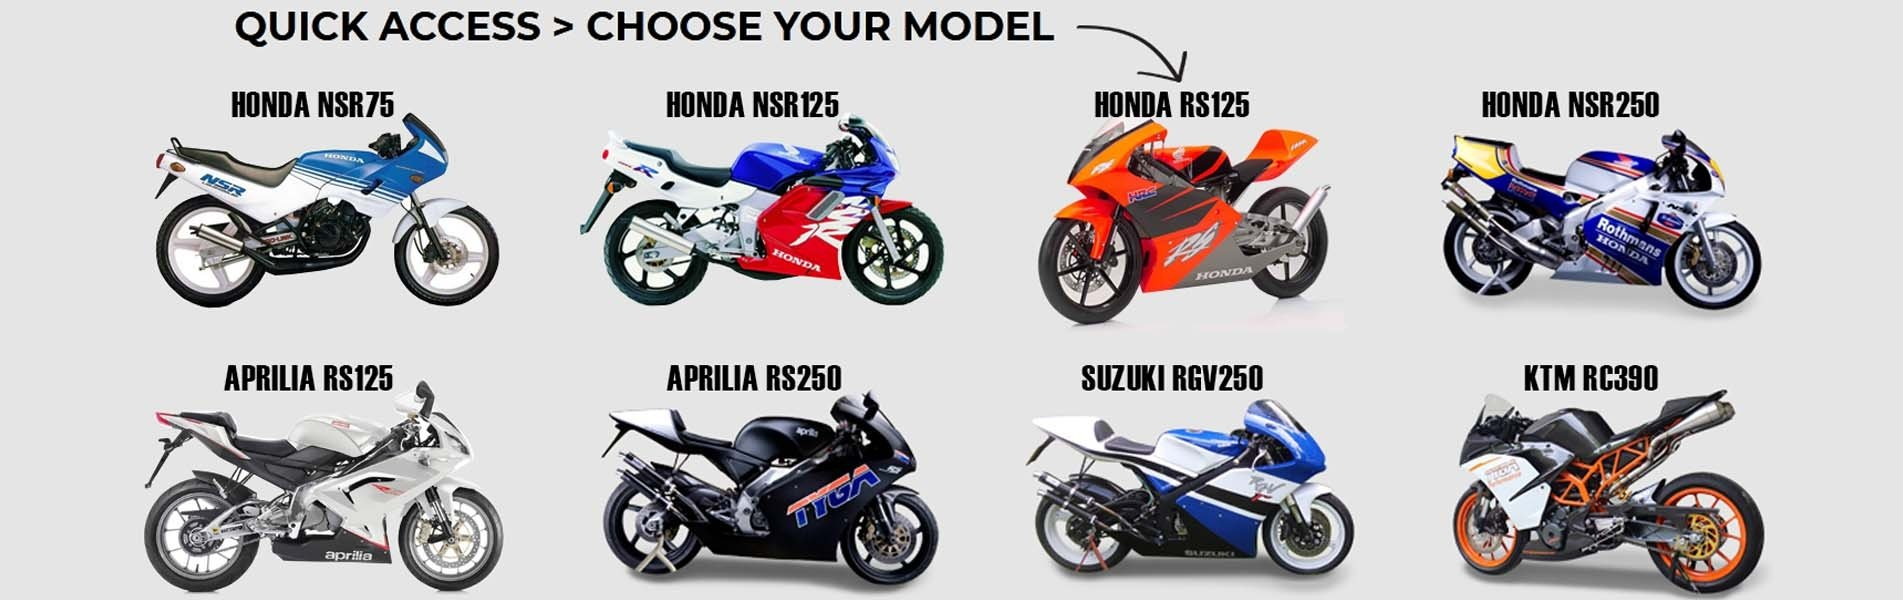 SELECT YOUR MODEL